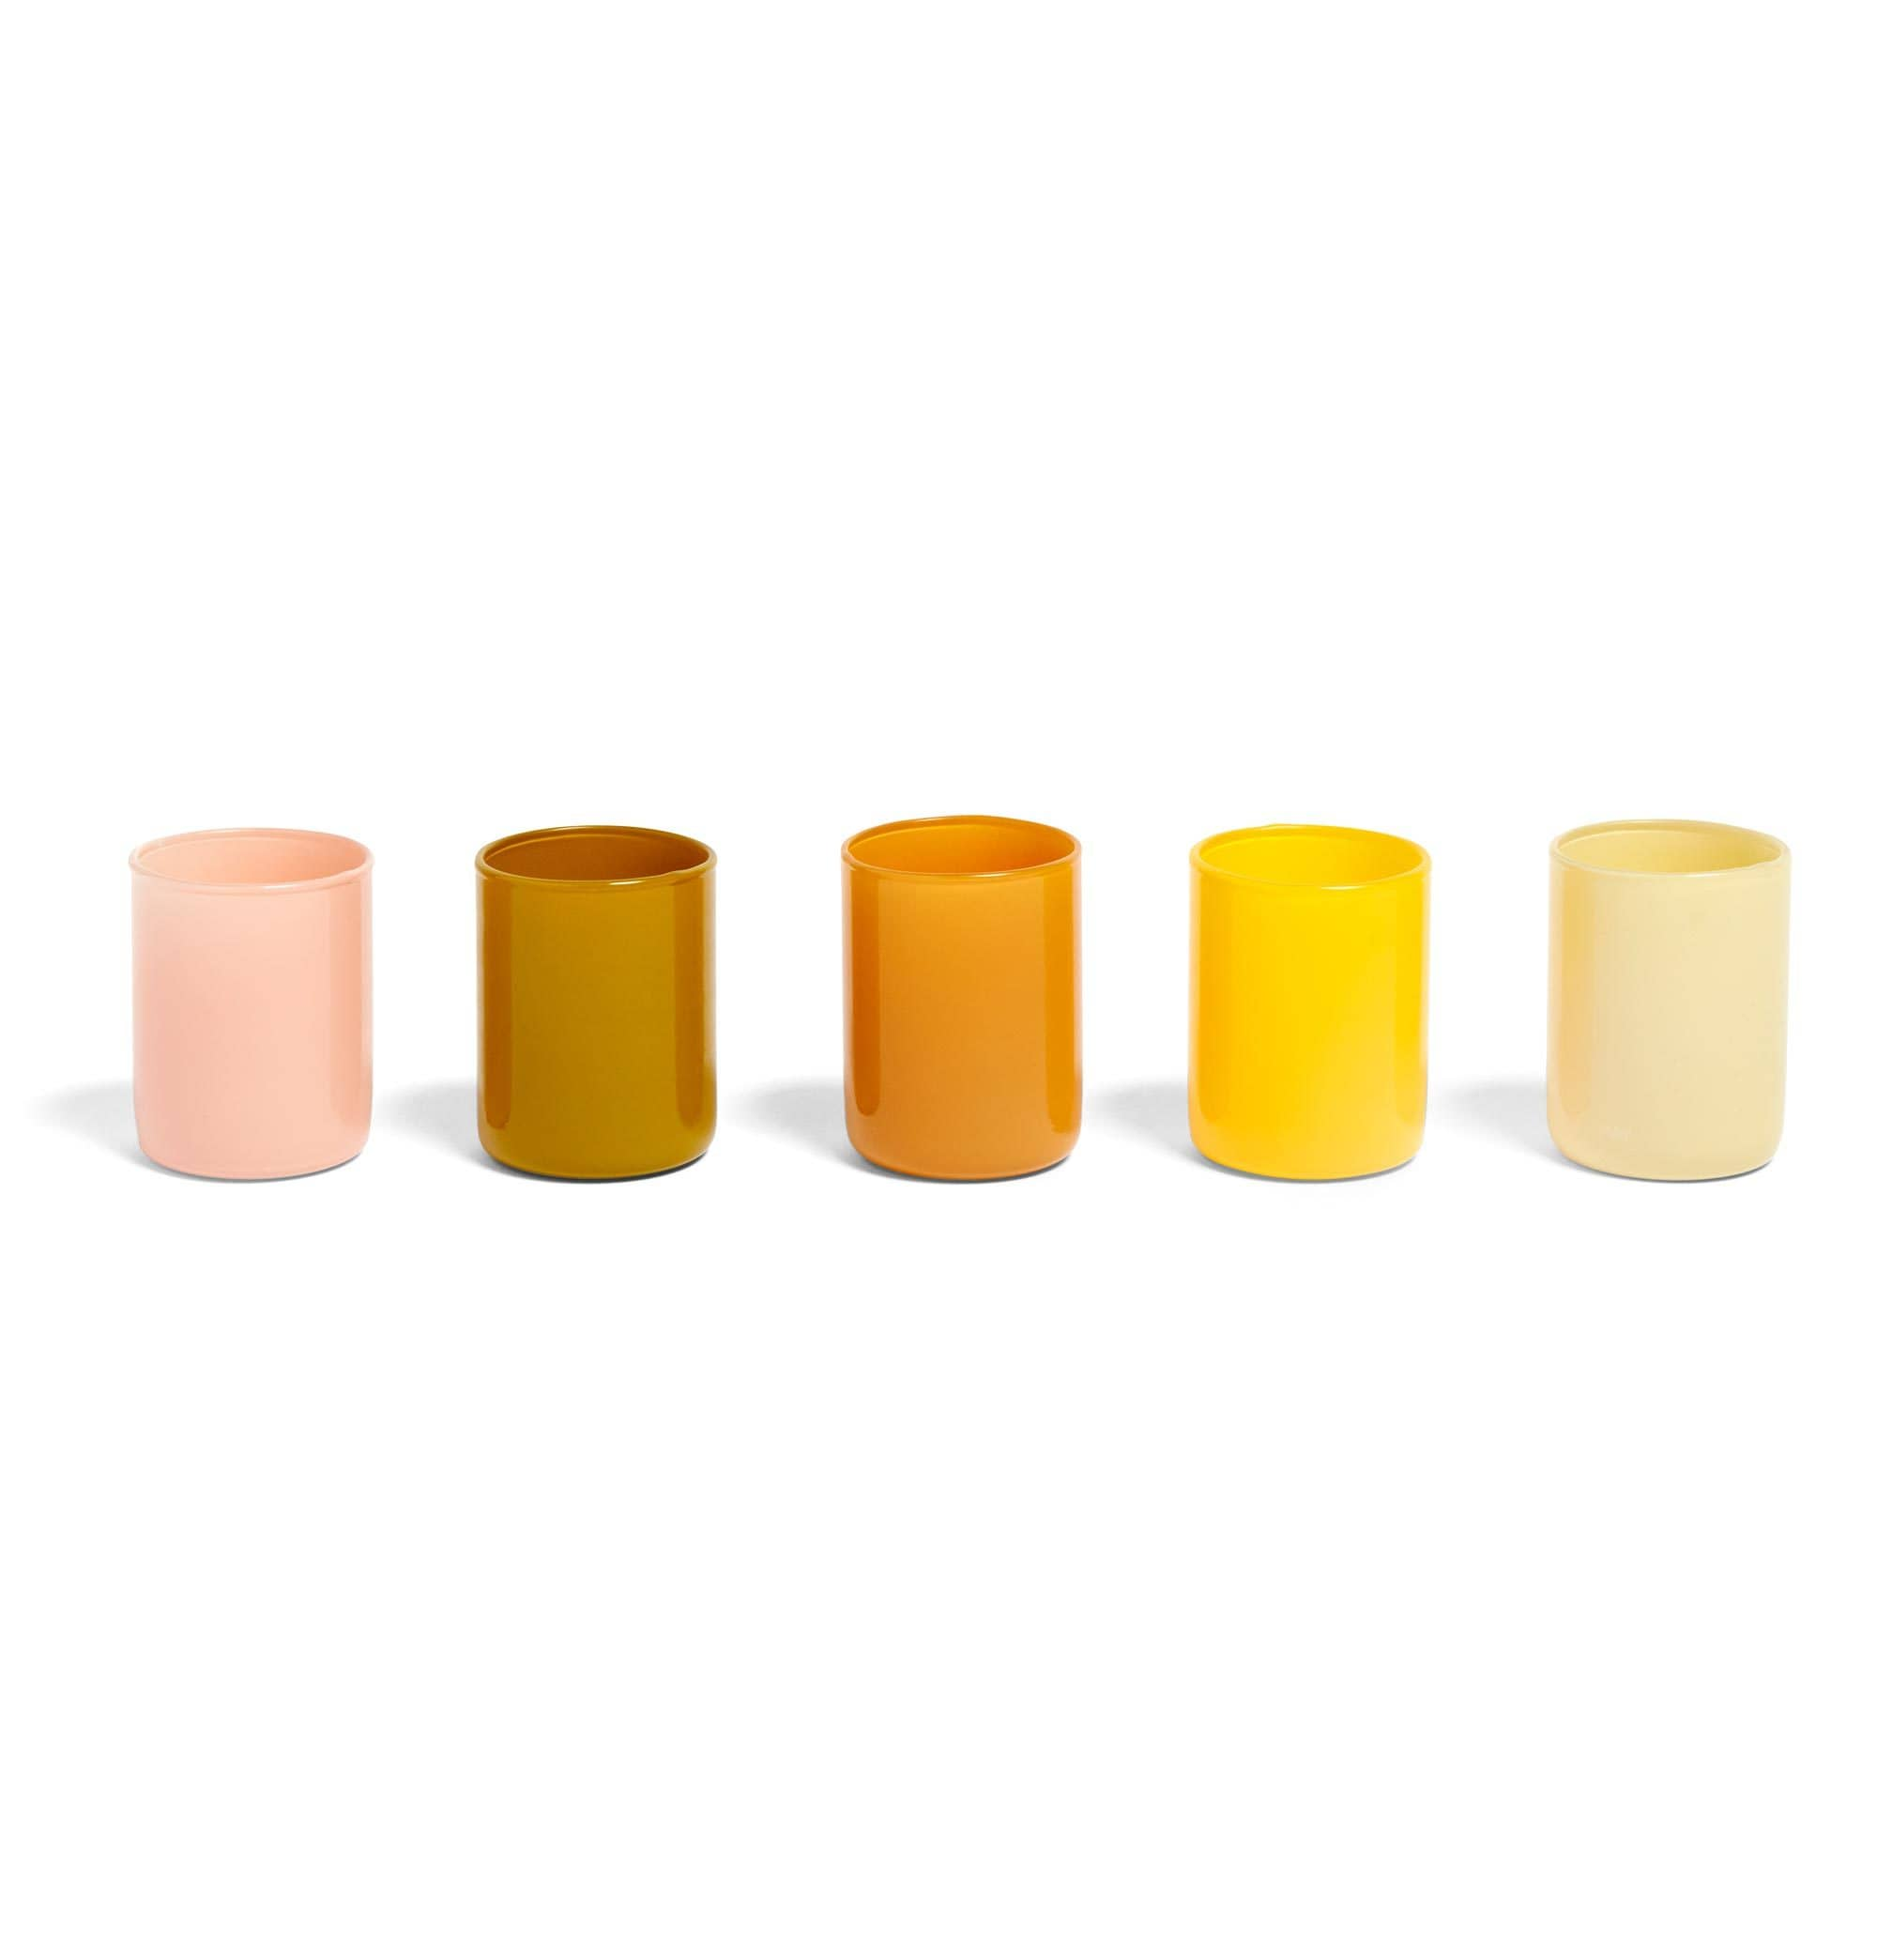 HAY Spot Votive – Set of 5 – Yellow - HUH. Store